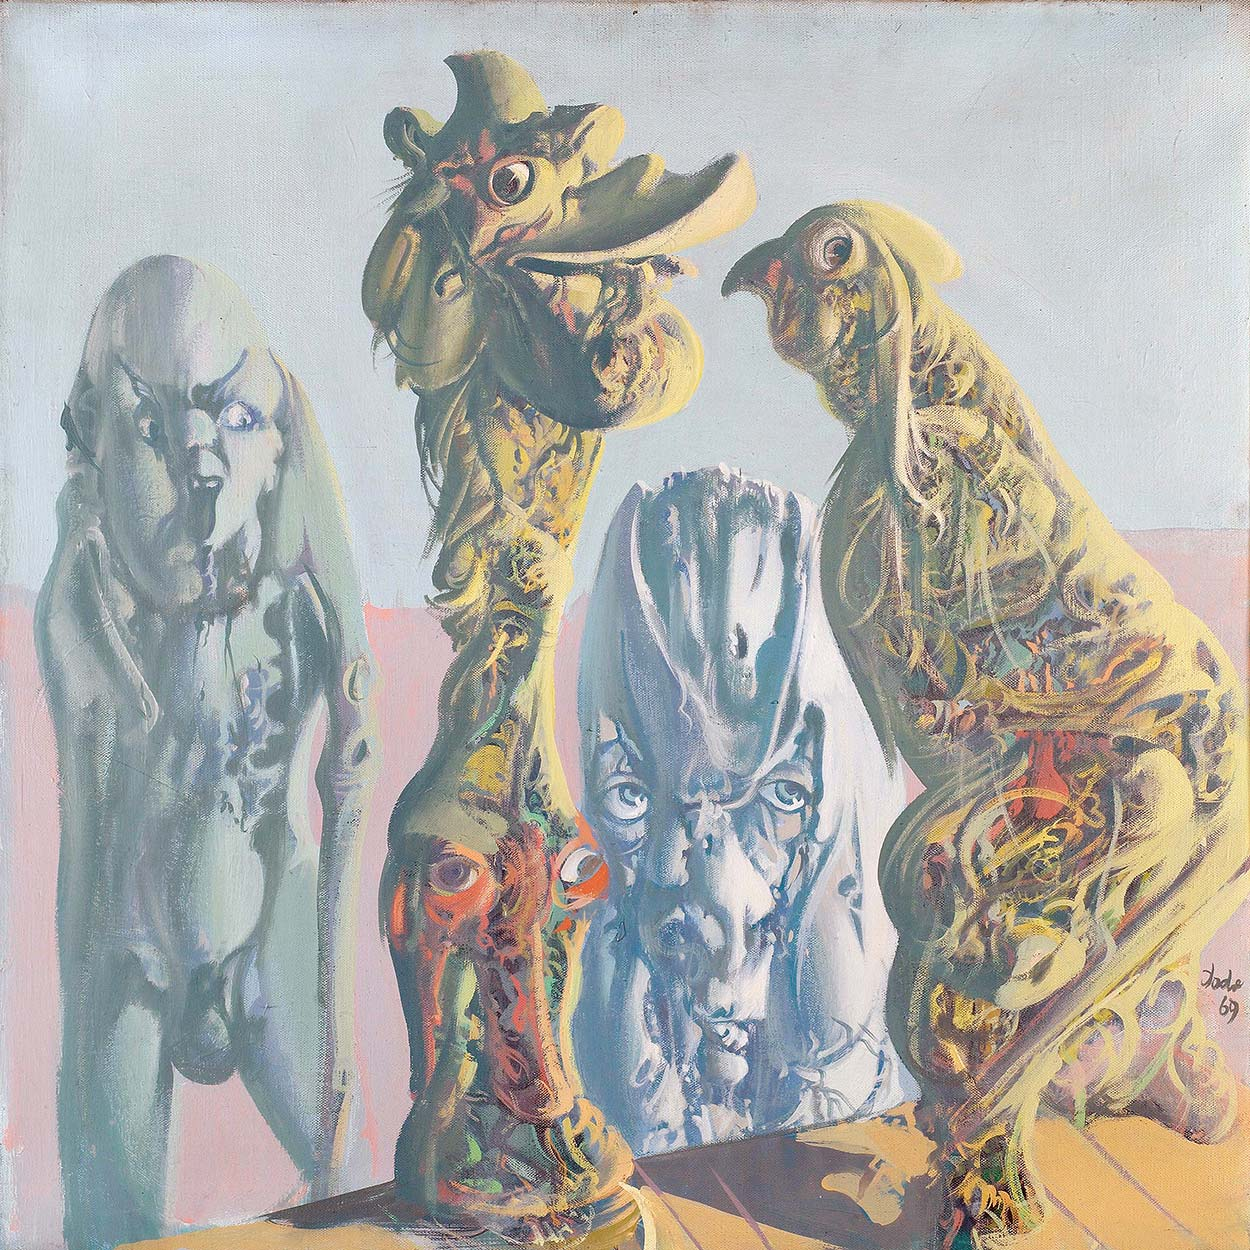 Dado's painting: The Gallery of Ancestors, 1969